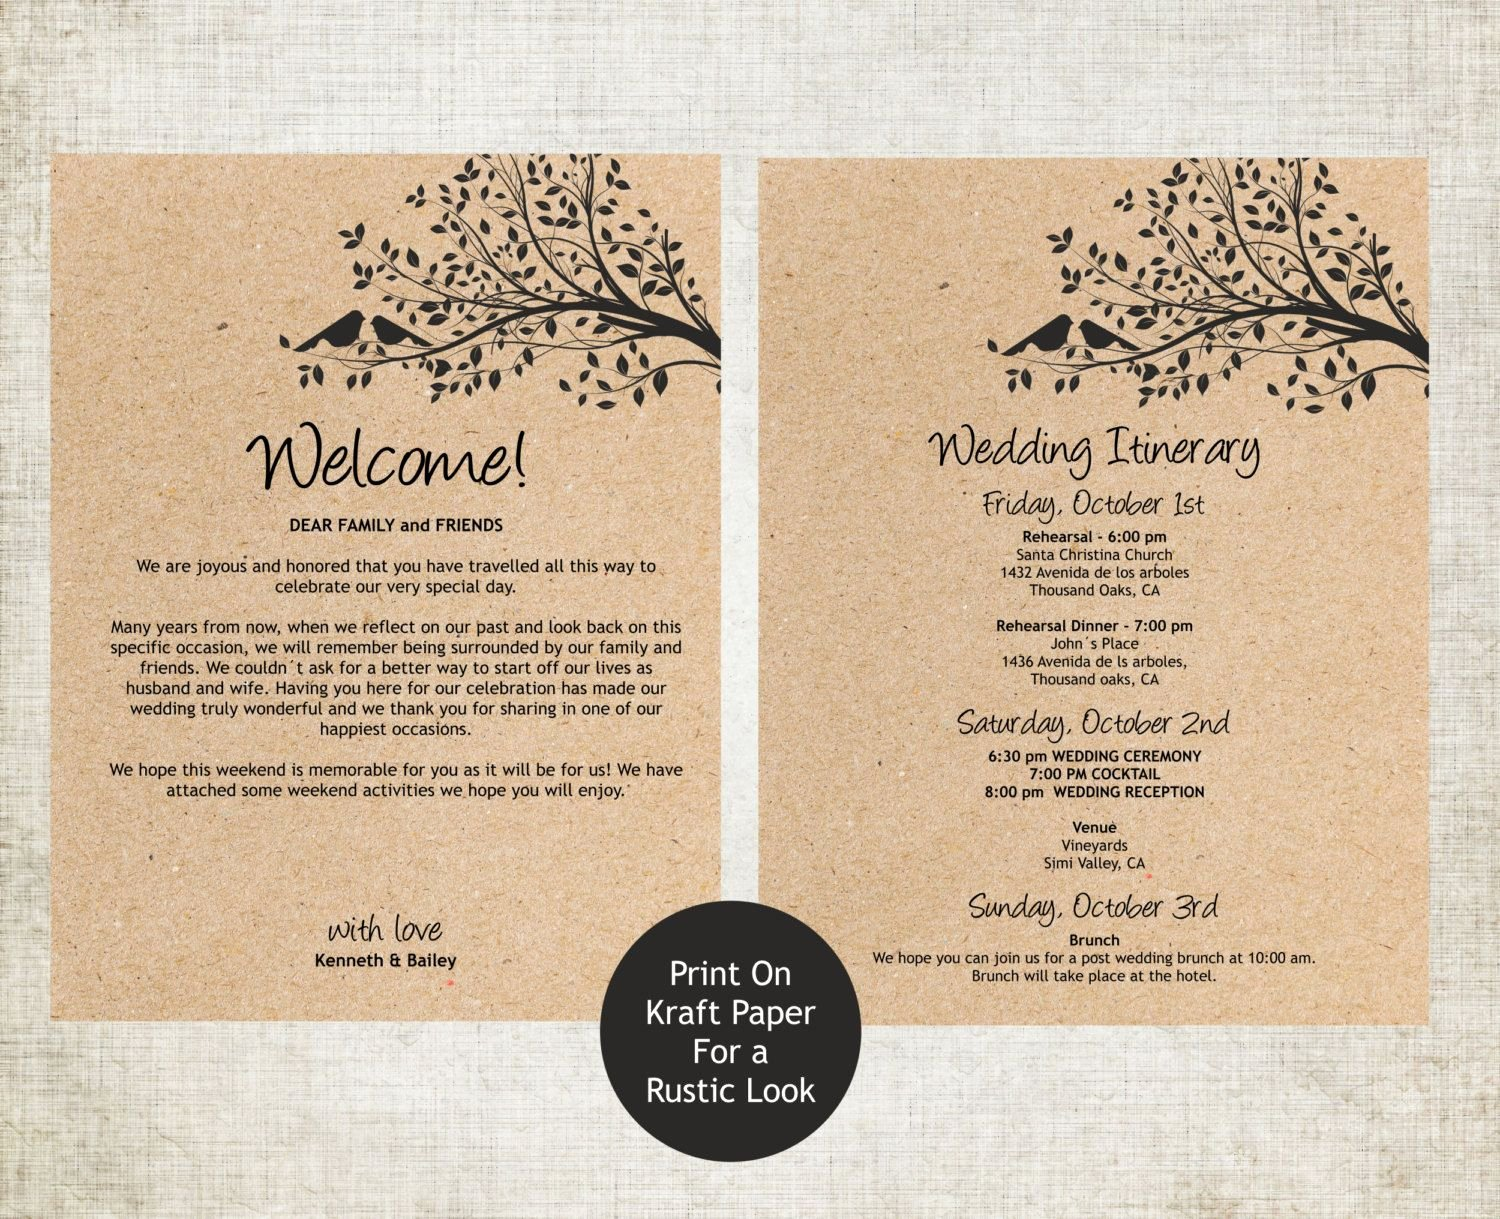 Wedding Welcome Letter Template Inspirational Wedding Wel E Letter and Itinerary Template by